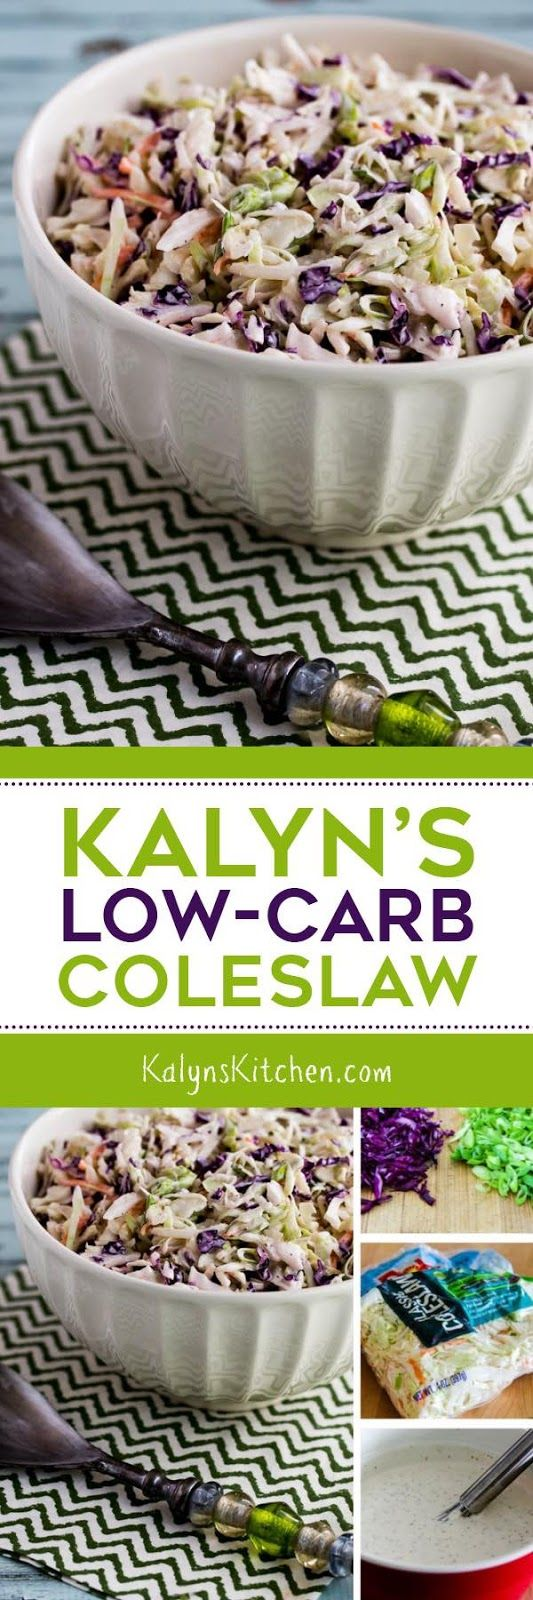 Kalyn's Low Carb Coleslaw is a recipe I came up with years ago when I first started my lower-carb eating journey, and when I made this for my extended family of definitely-not-low-carb eaters, several people said it was the best coleslaw they'd ever had. This coleslaw is also gluten-free and South Beach Diet friendly; enjoy!  [found on KalynsKitchen.com]